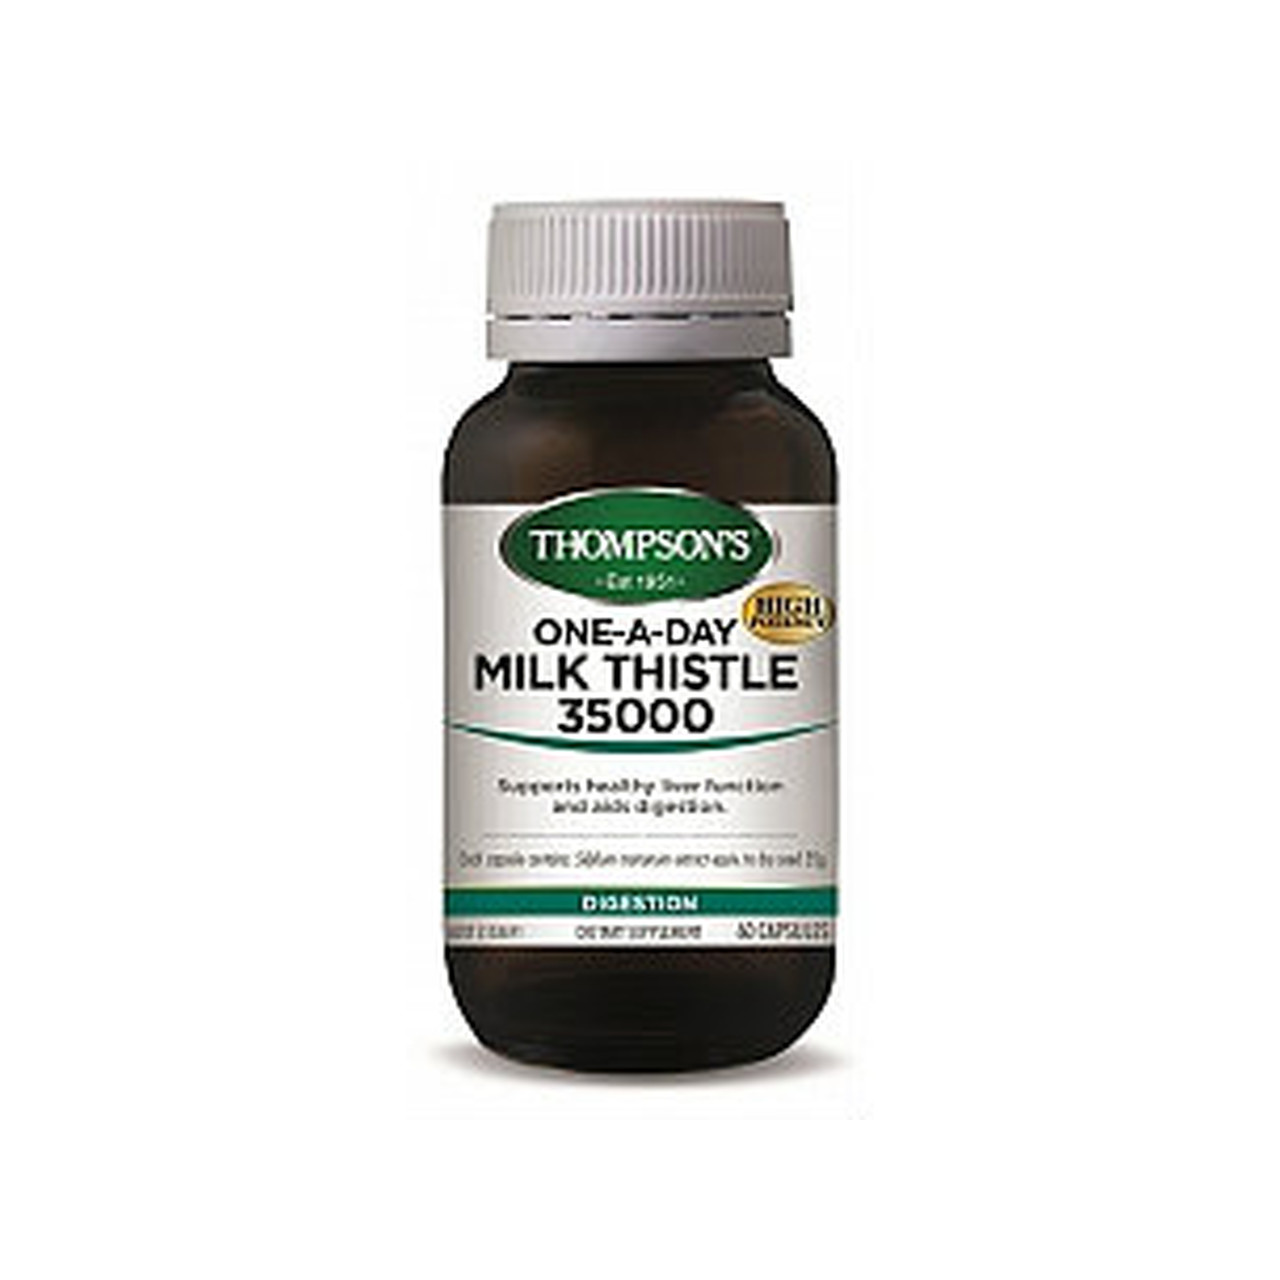 One-A-Day Milk Thistle 35000 - Liver Support by Thompson's Vitamins